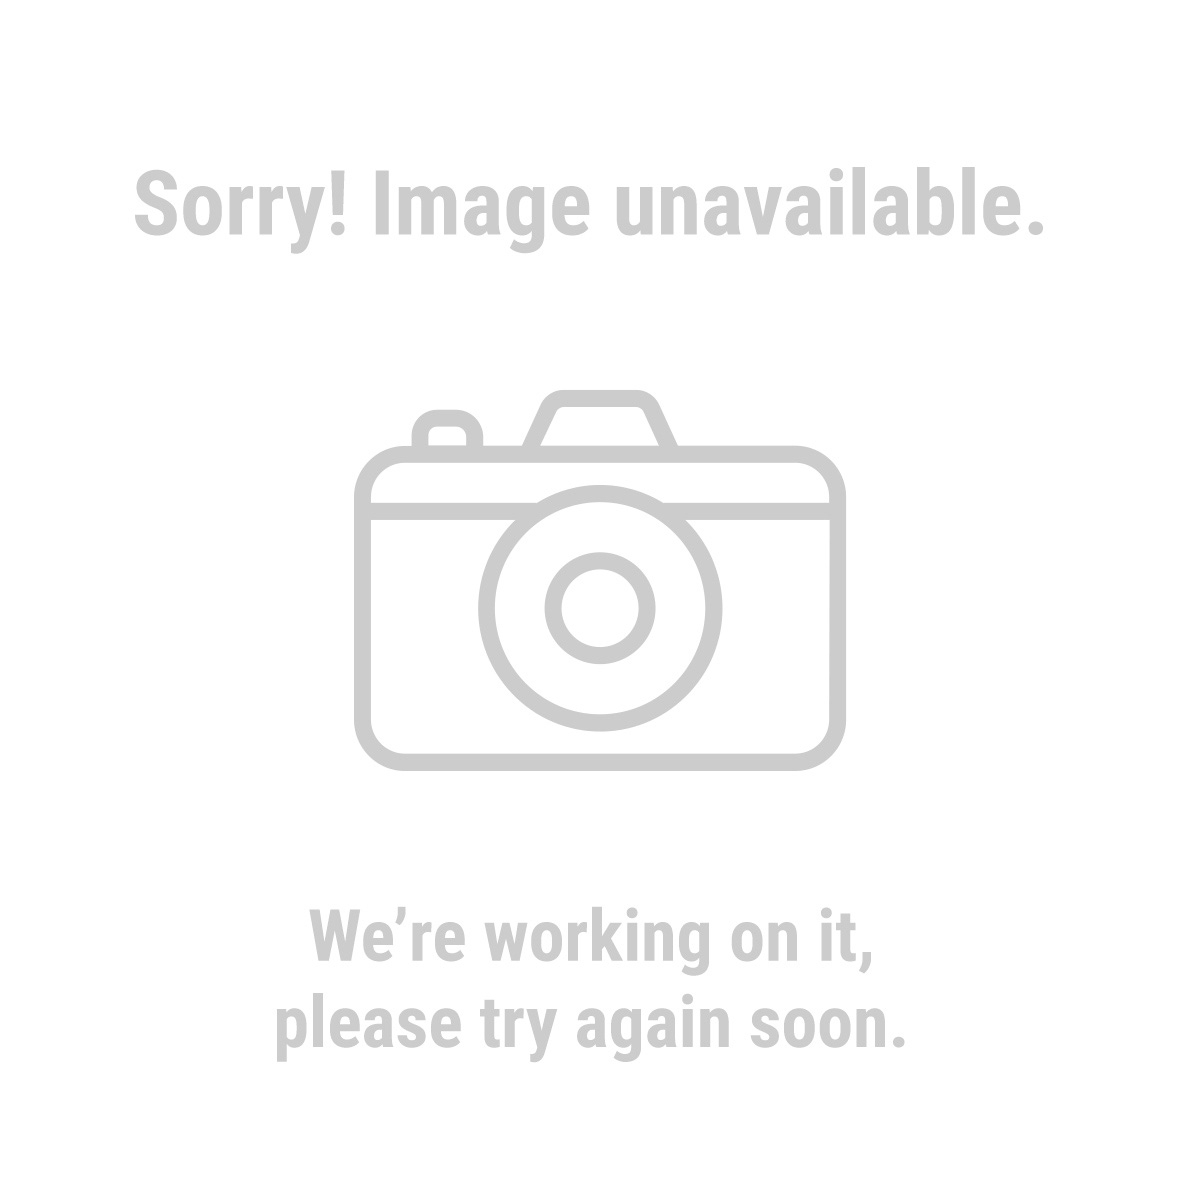 HARDY 90913 Coated Rubber Grip Gloves, X-Large